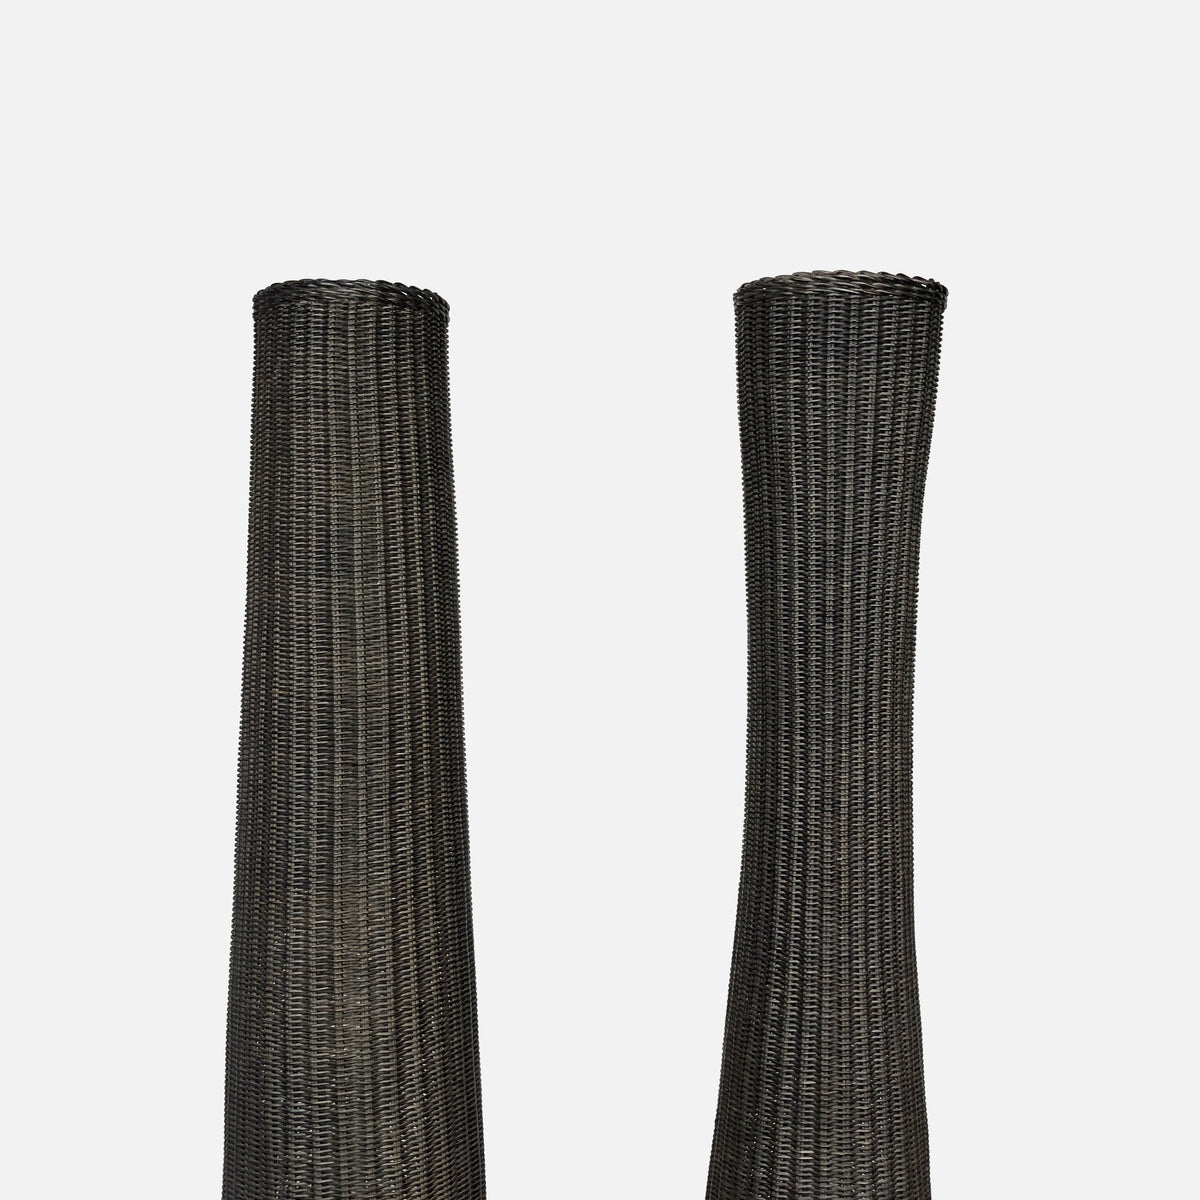 Les Nymphes Vase (2 in stock)